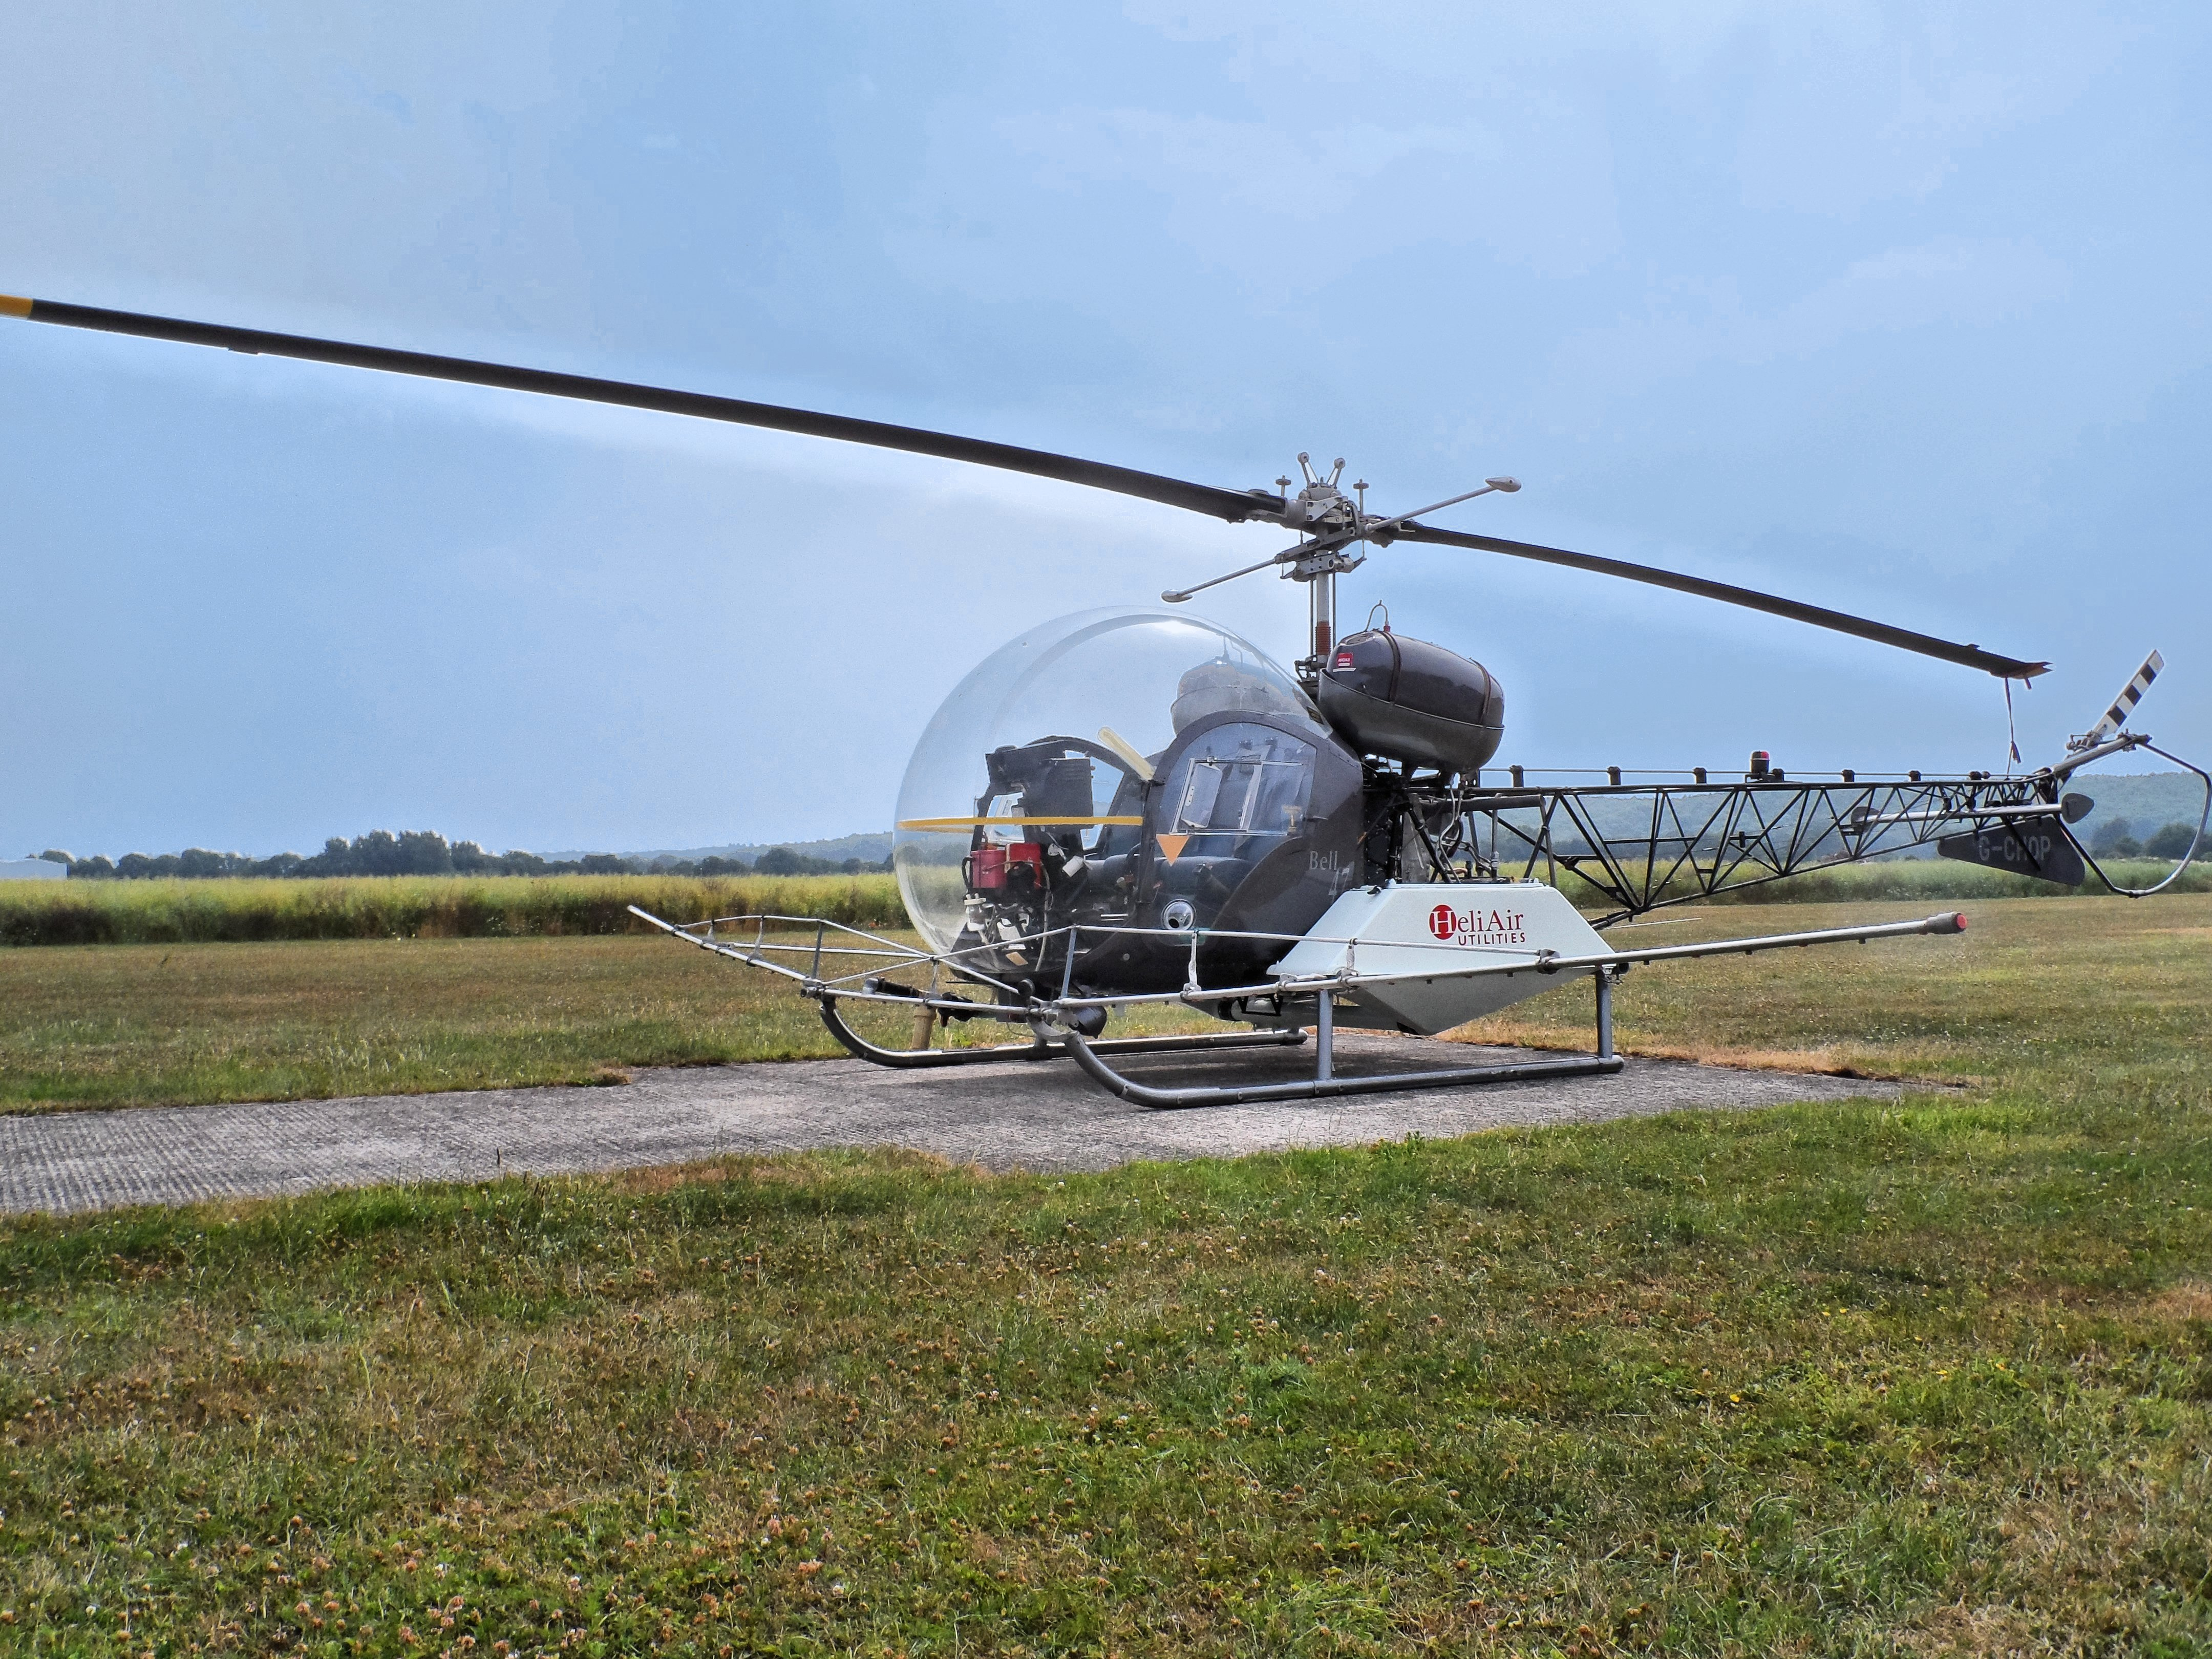 helicopter pilot scholarships with Crop Spraying 1 Copy on Uk Europes First Easa Robinson R66 Turbine also Meet Our Newest Cabri G2 Pplh as well Tsp aceplace additionally Boeing Highlights The Need For More Women Pilots In Latest Pilot Forecast as well Celebrating Novembers Successes.